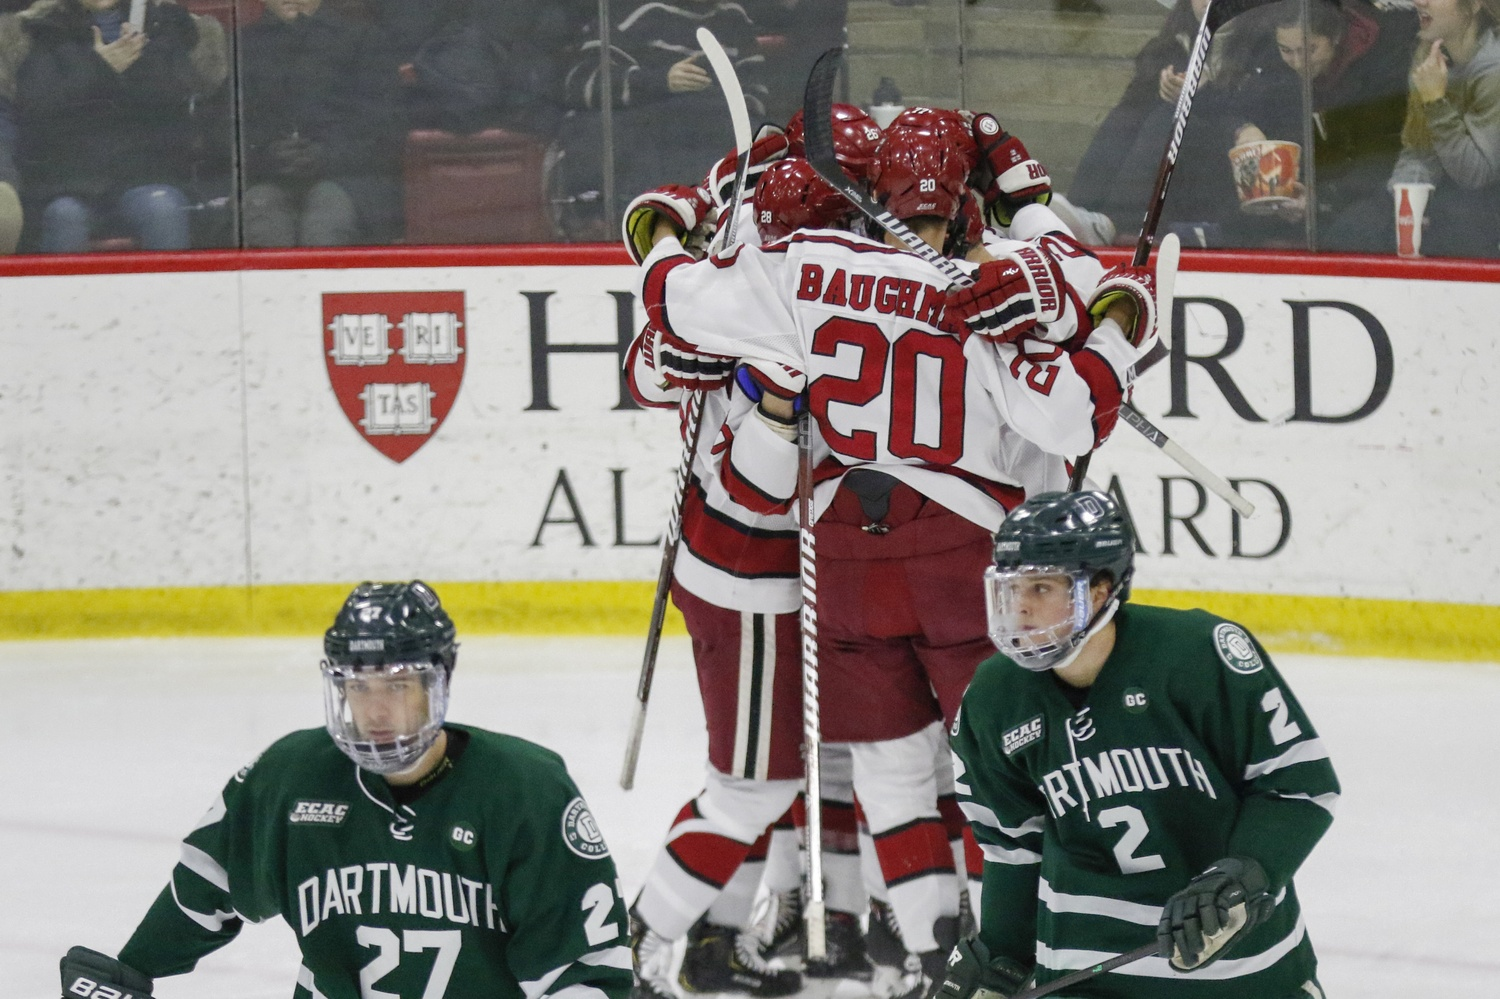 With the win on Friday, the Crimson brings the season series against Dartmouth to a 1-1 tie. Unless the teams meet again in the ECAC playoffs, that result will stand for this year.